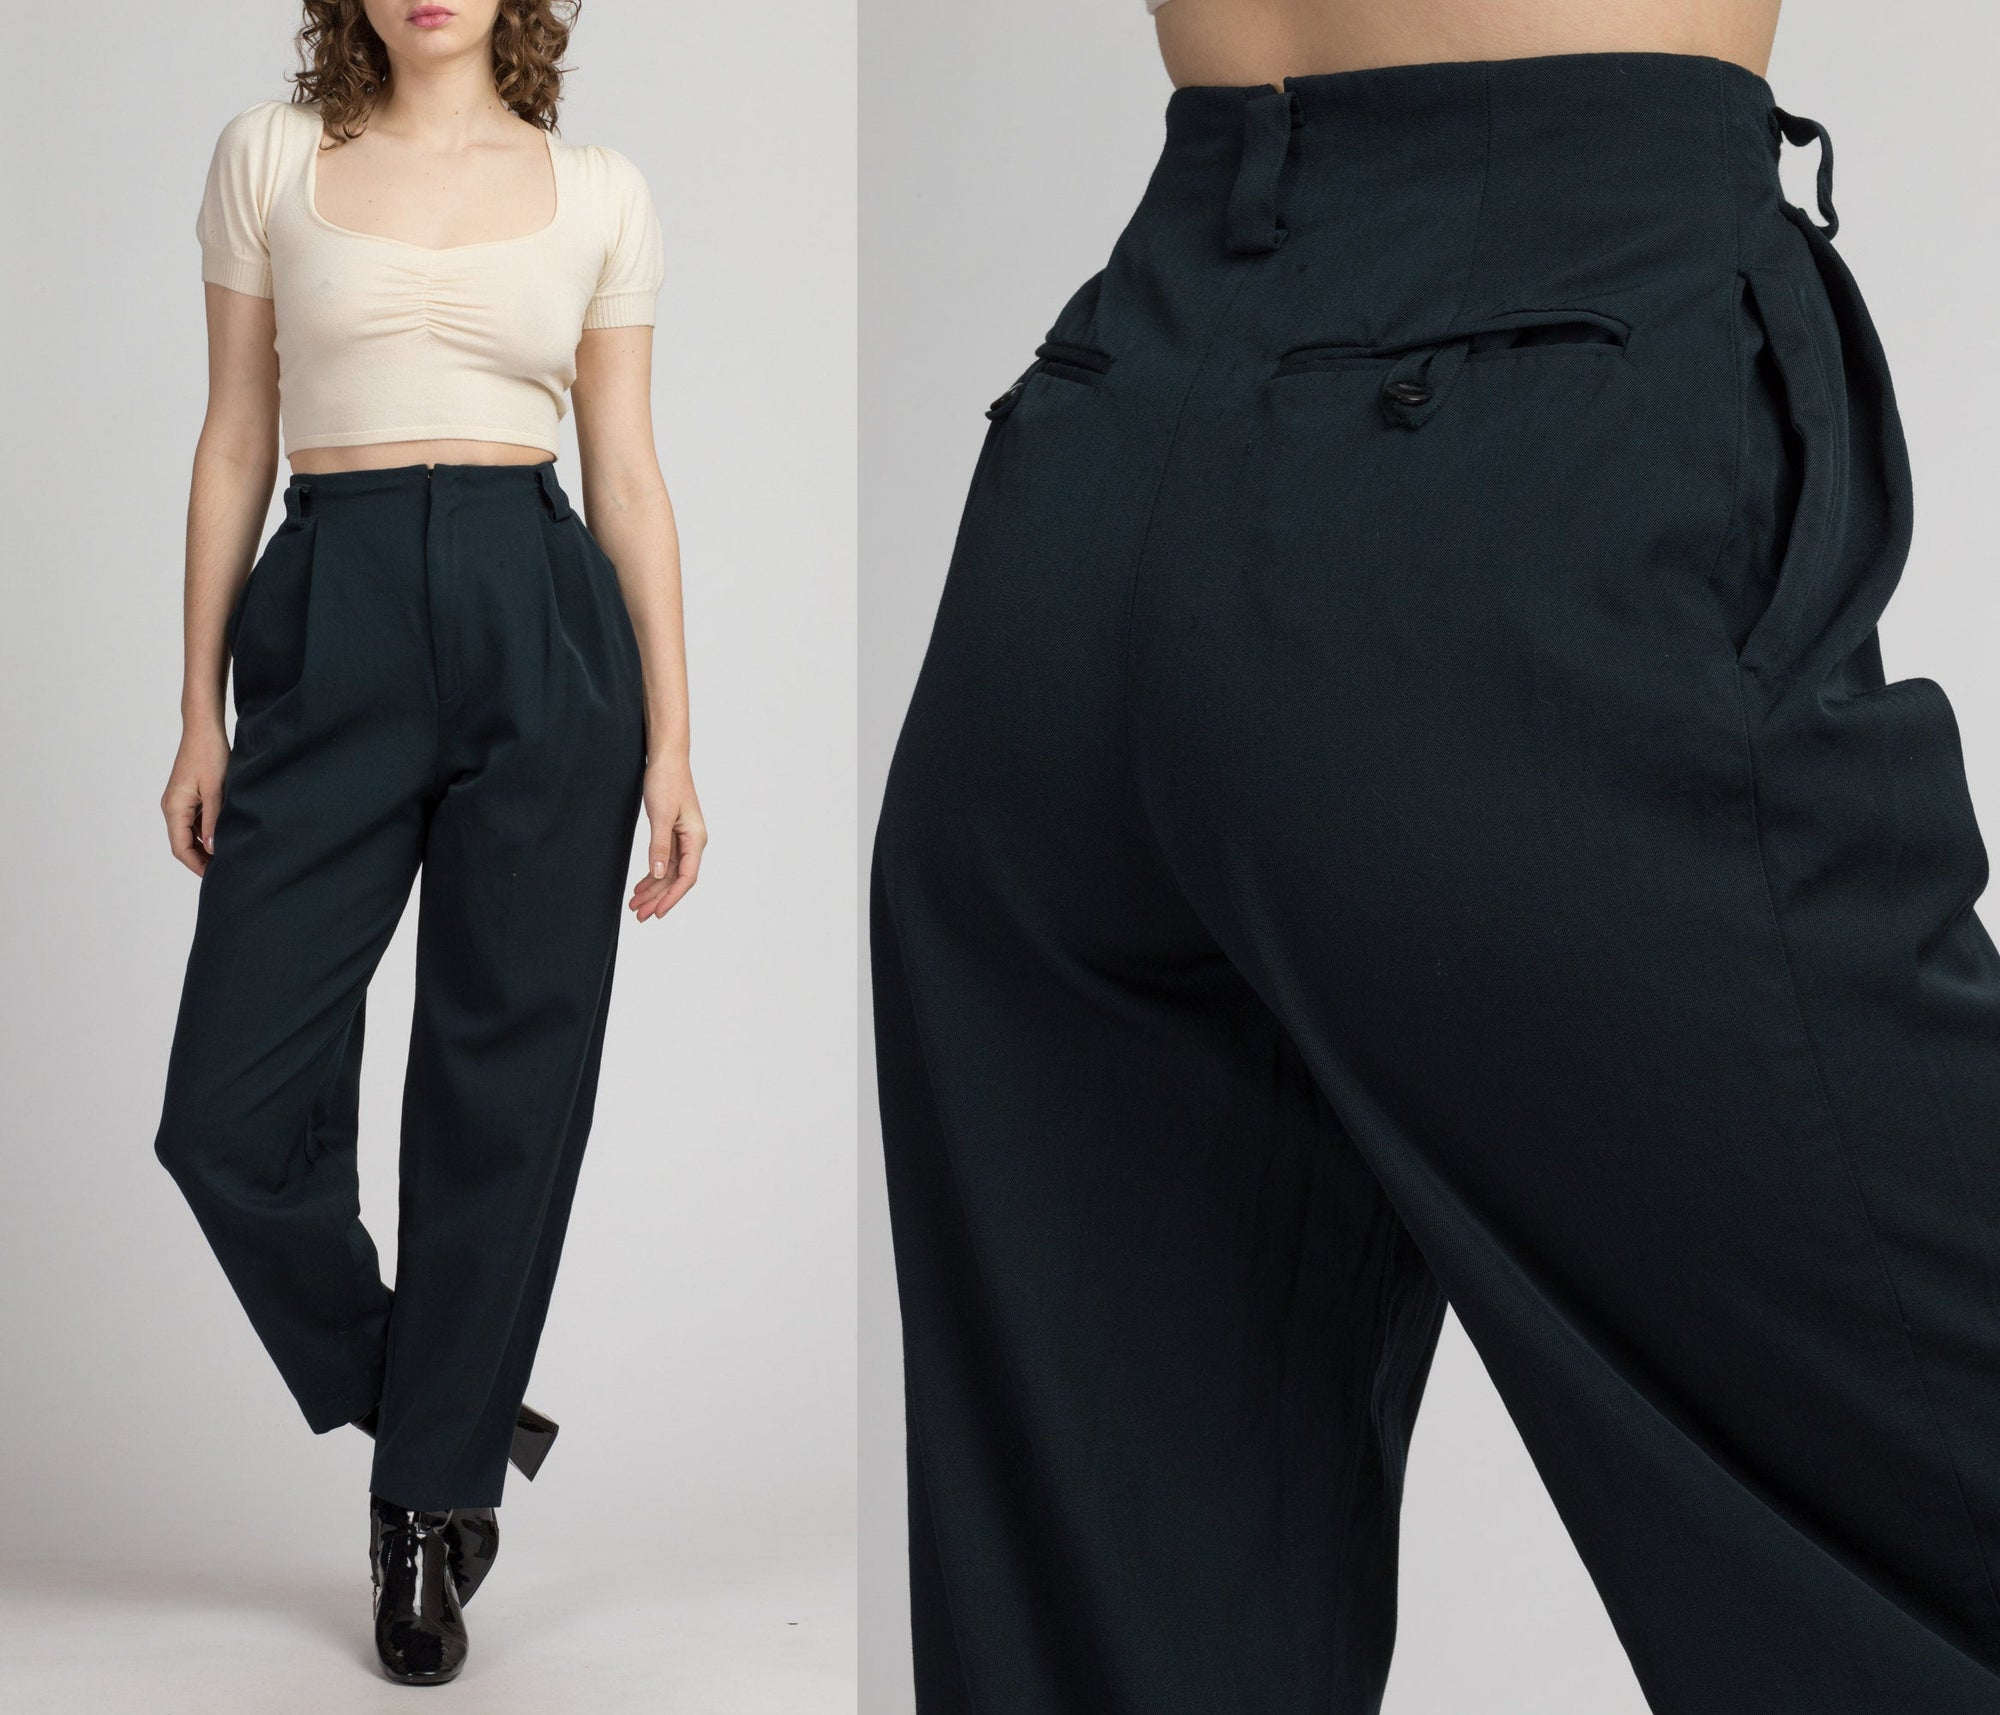 80s High Waisted Forest Green Trousers - Size 4 | Vintage Retro Tapered Leg Pleated Wool Mom Pants